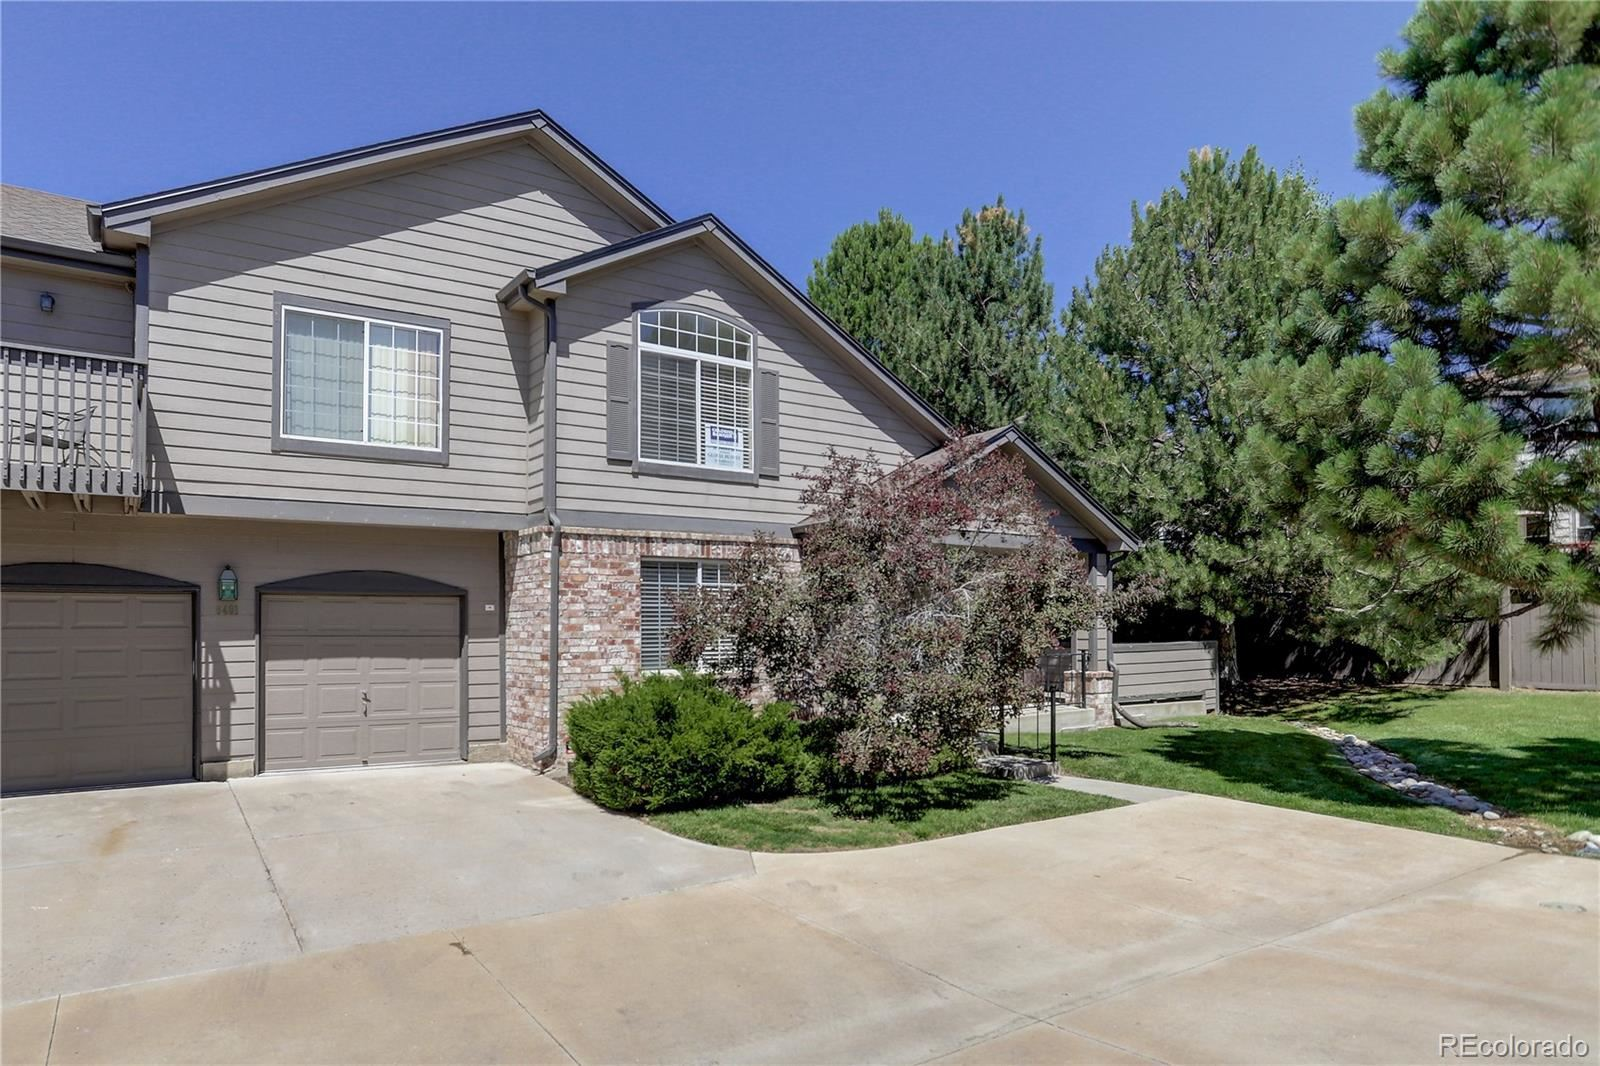 6401 S Dallas Court, Englewood, CO 80111 - MLS#: 5645570